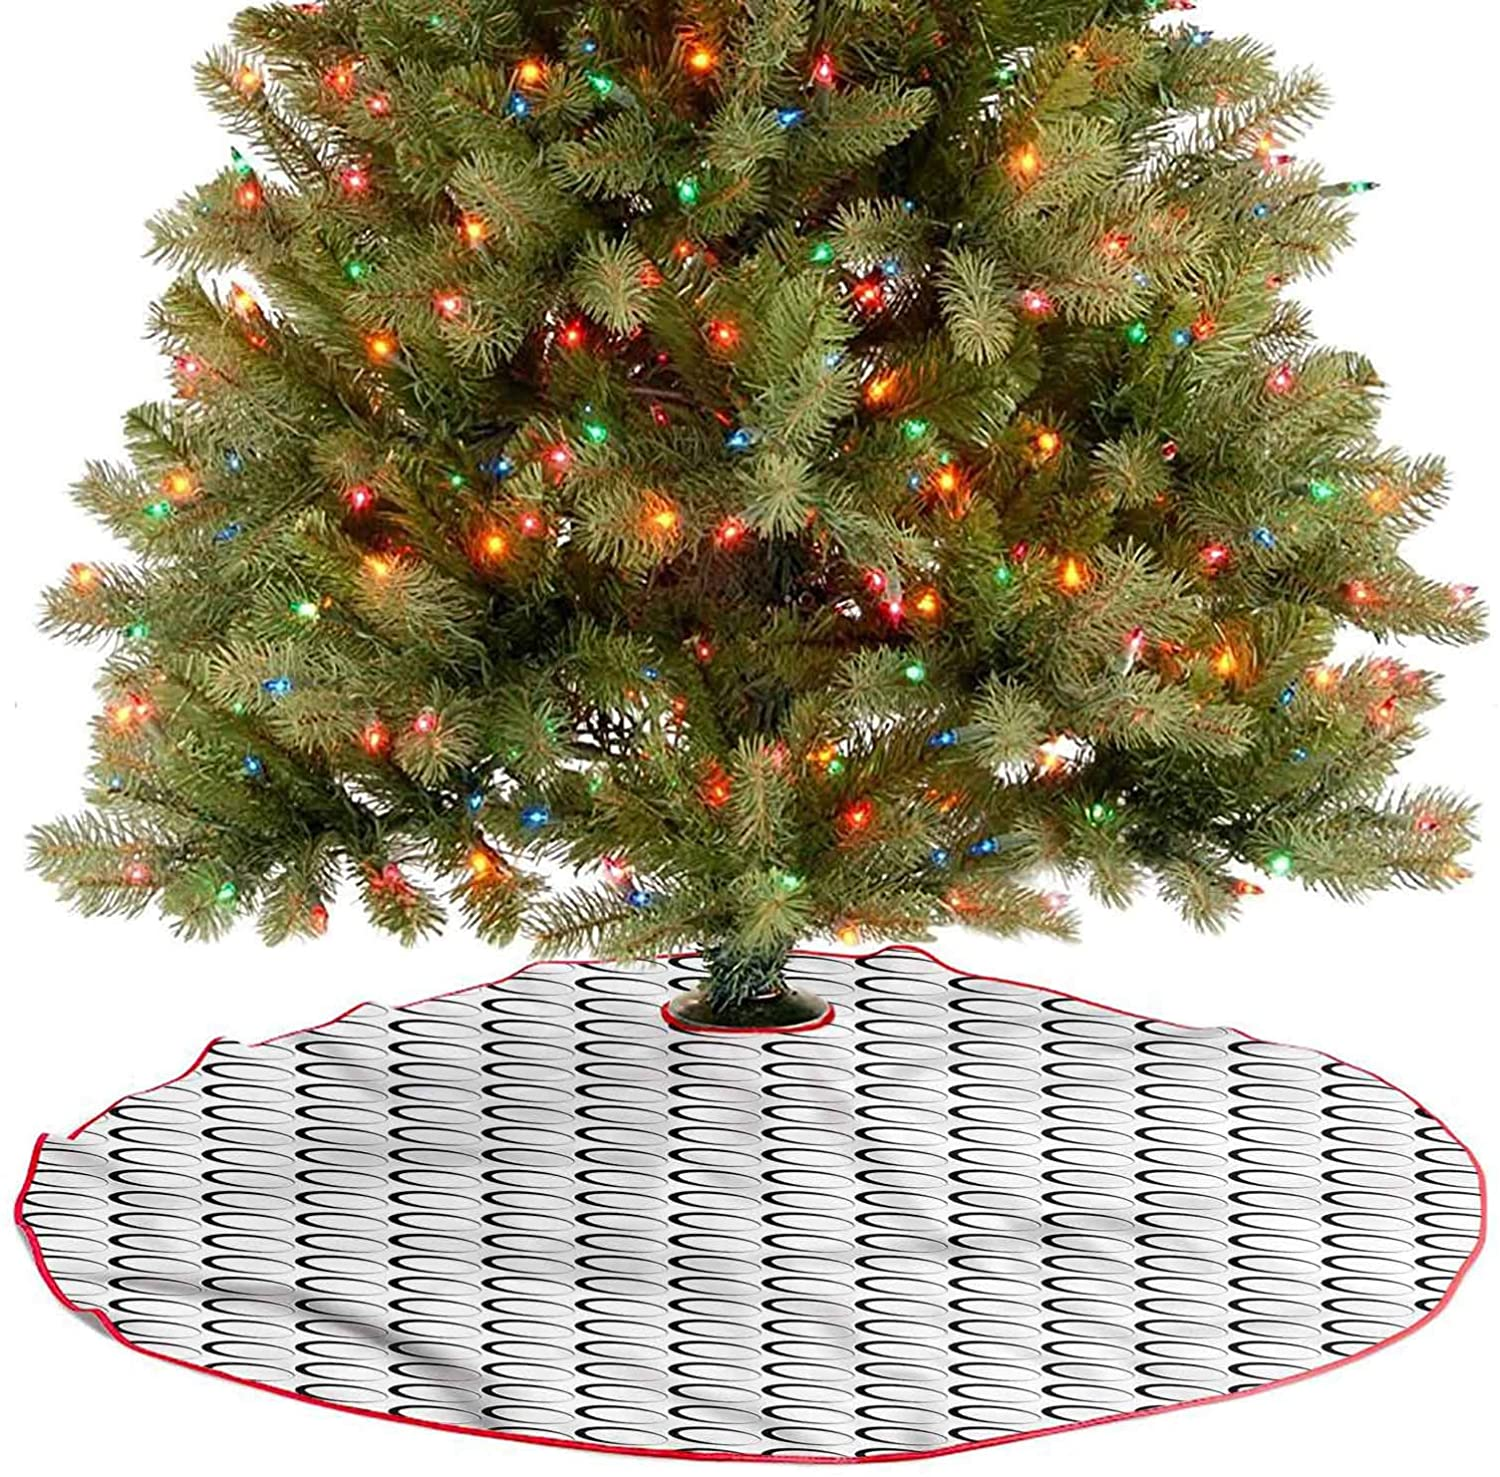 ThinkingPower Soft Christmas Tree Mat Slanted Ovals Christmas Trees Mat Decorations Indoors for Xmas Decor Festive Holiday Decoration Diameter - 36 Inch